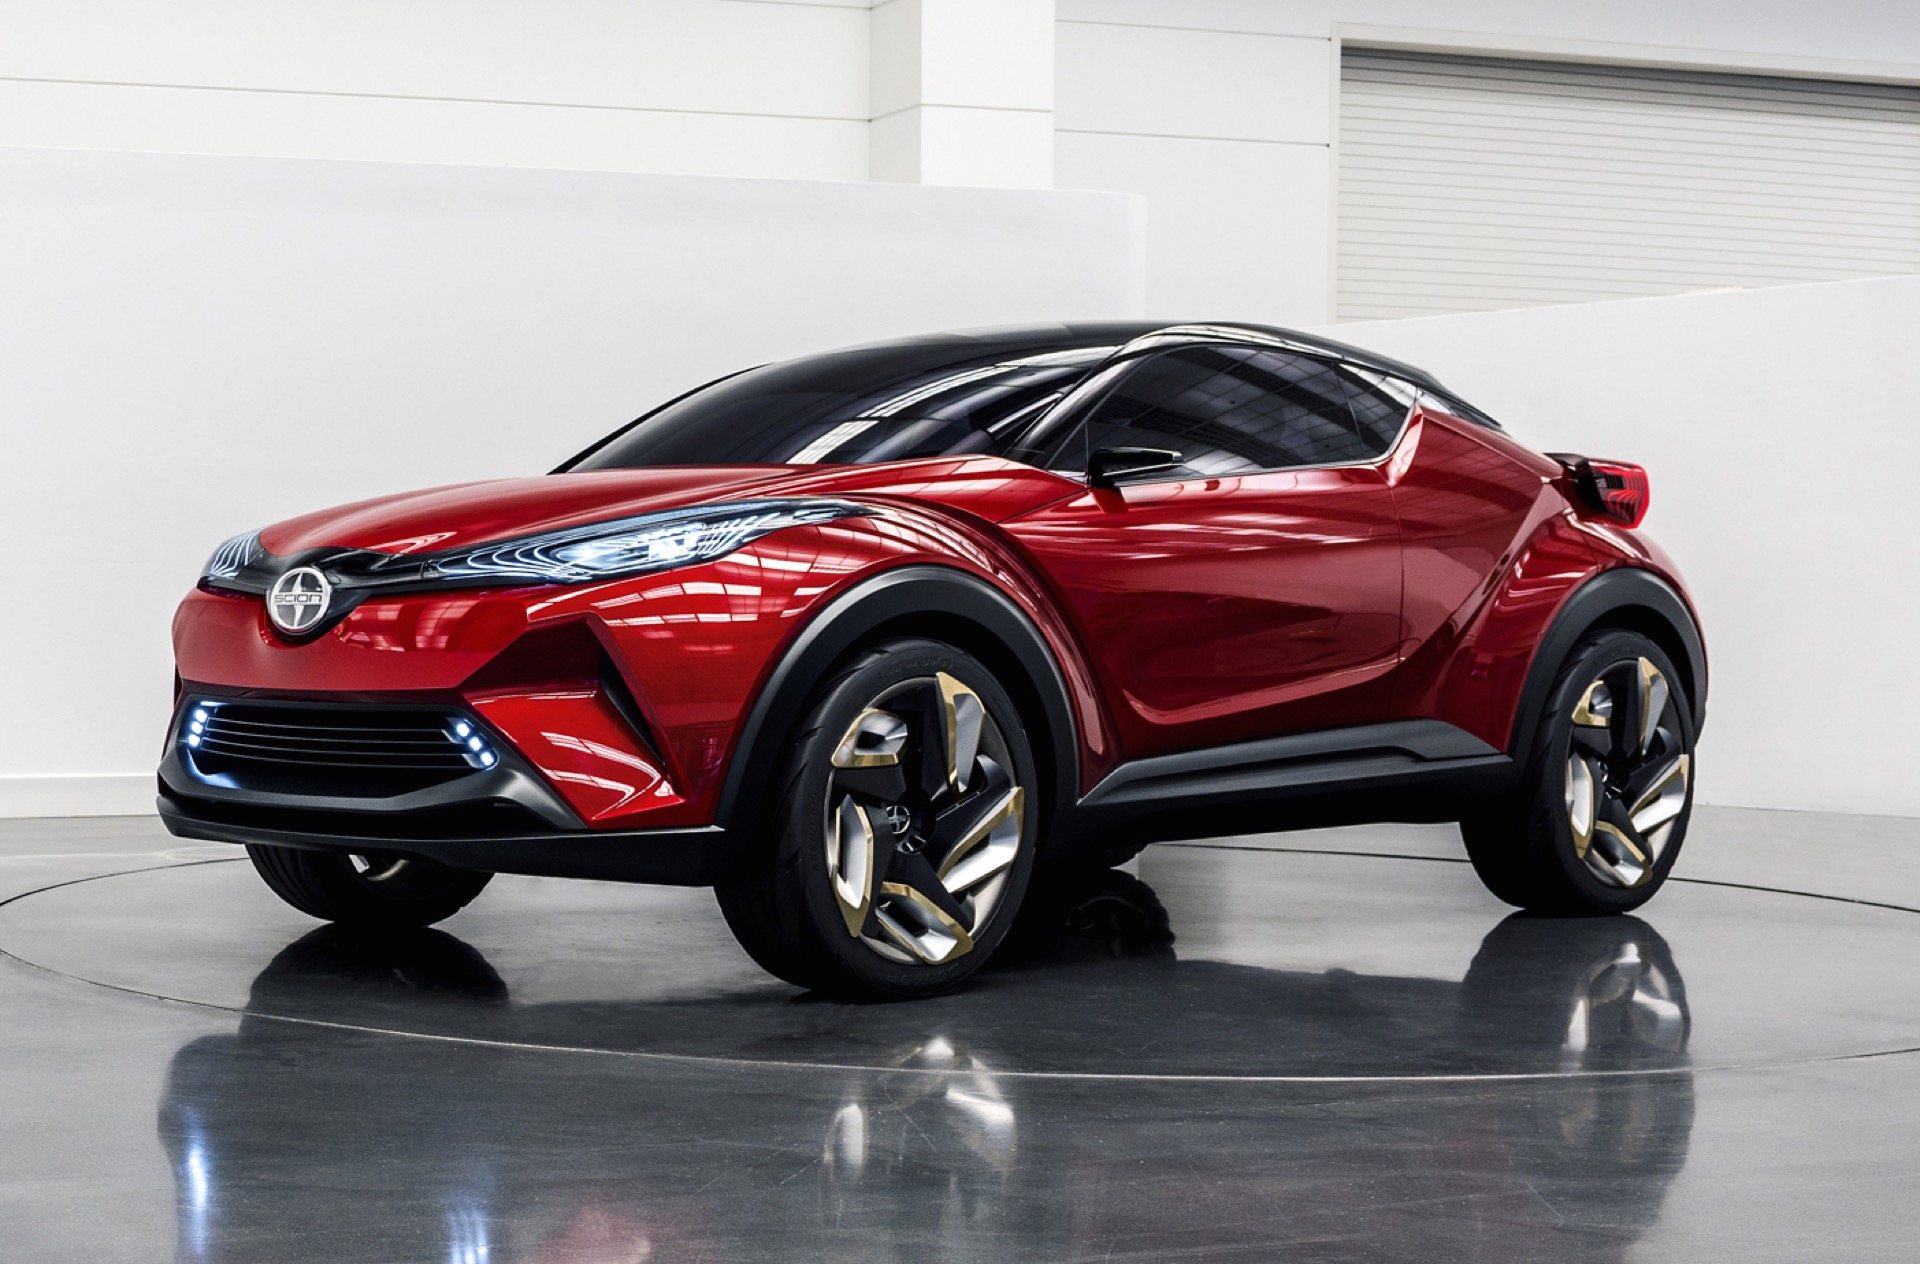 Toyota Kansas City >> Toyota's Next Crossover Is The Scion C-HR Concept